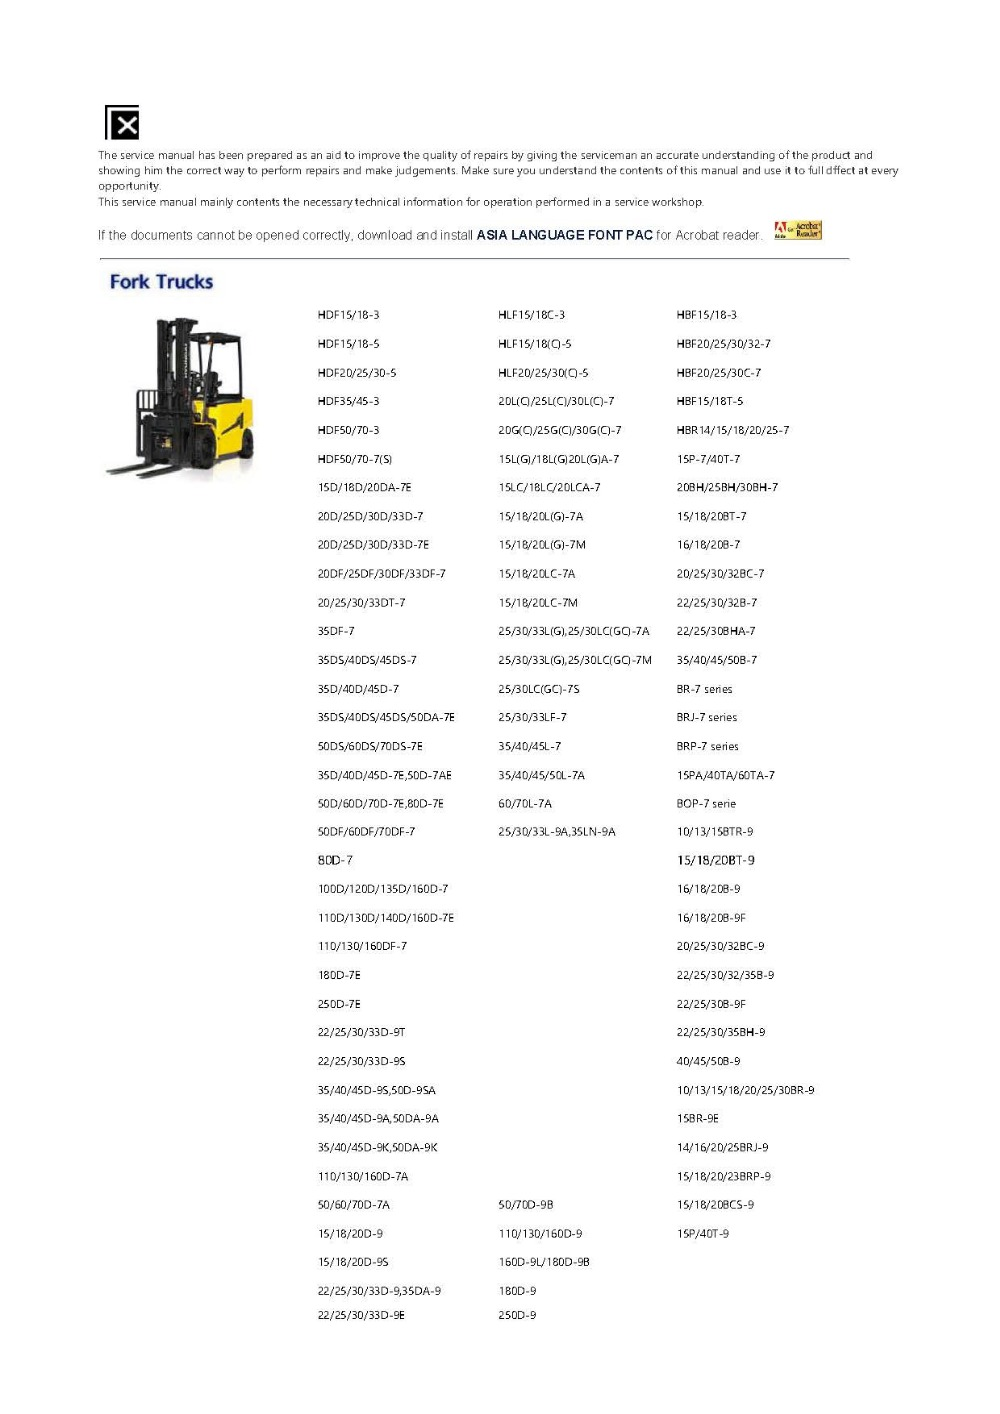 forklift trucks and engine service manuals and workshop manuals for hyundai in software from automobiles [ 1000 x 1414 Pixel ]